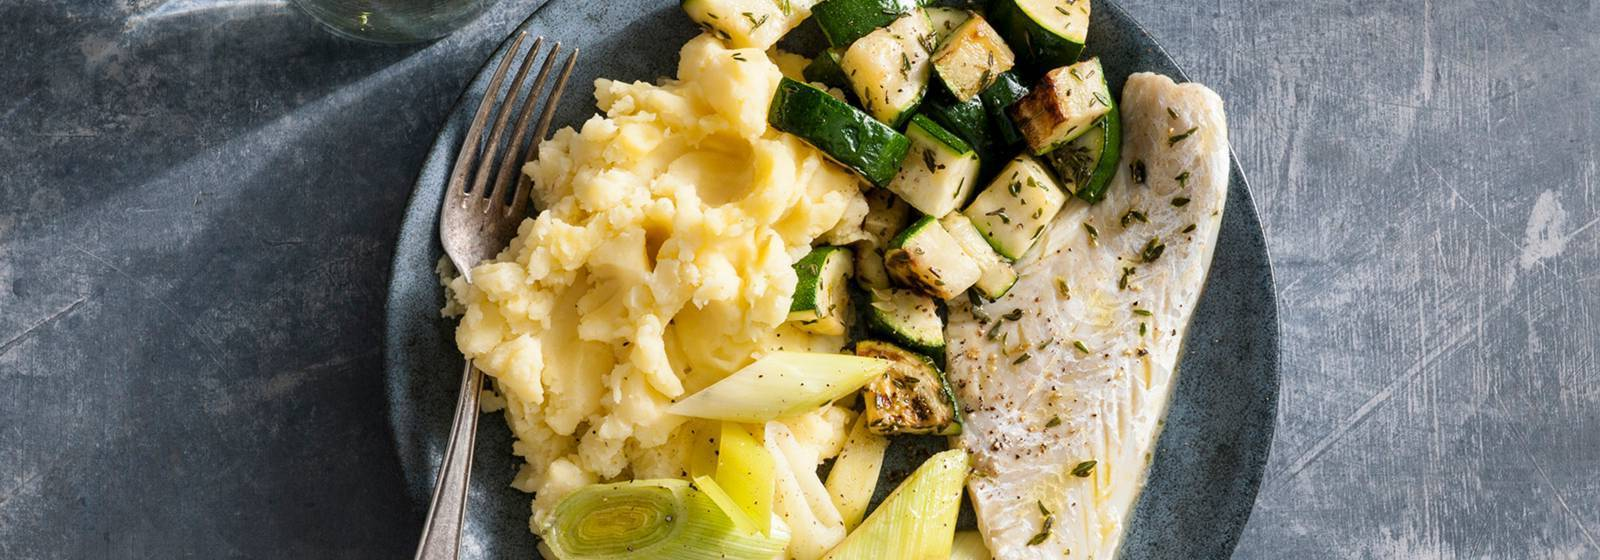 Baked haddock with green vegetables